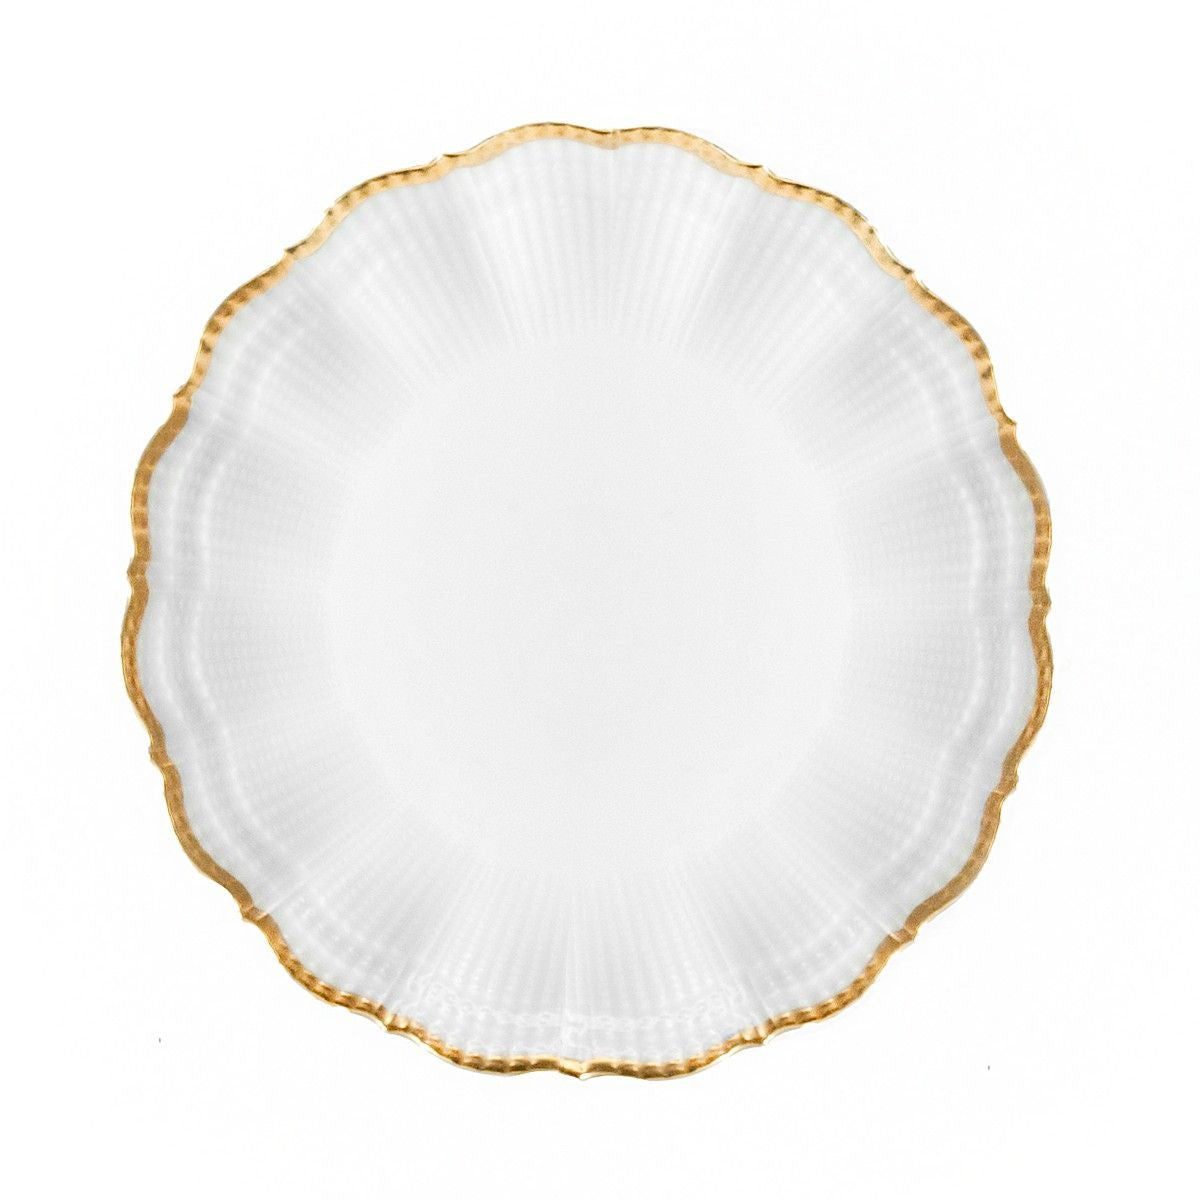 Corail Or Salad Plate